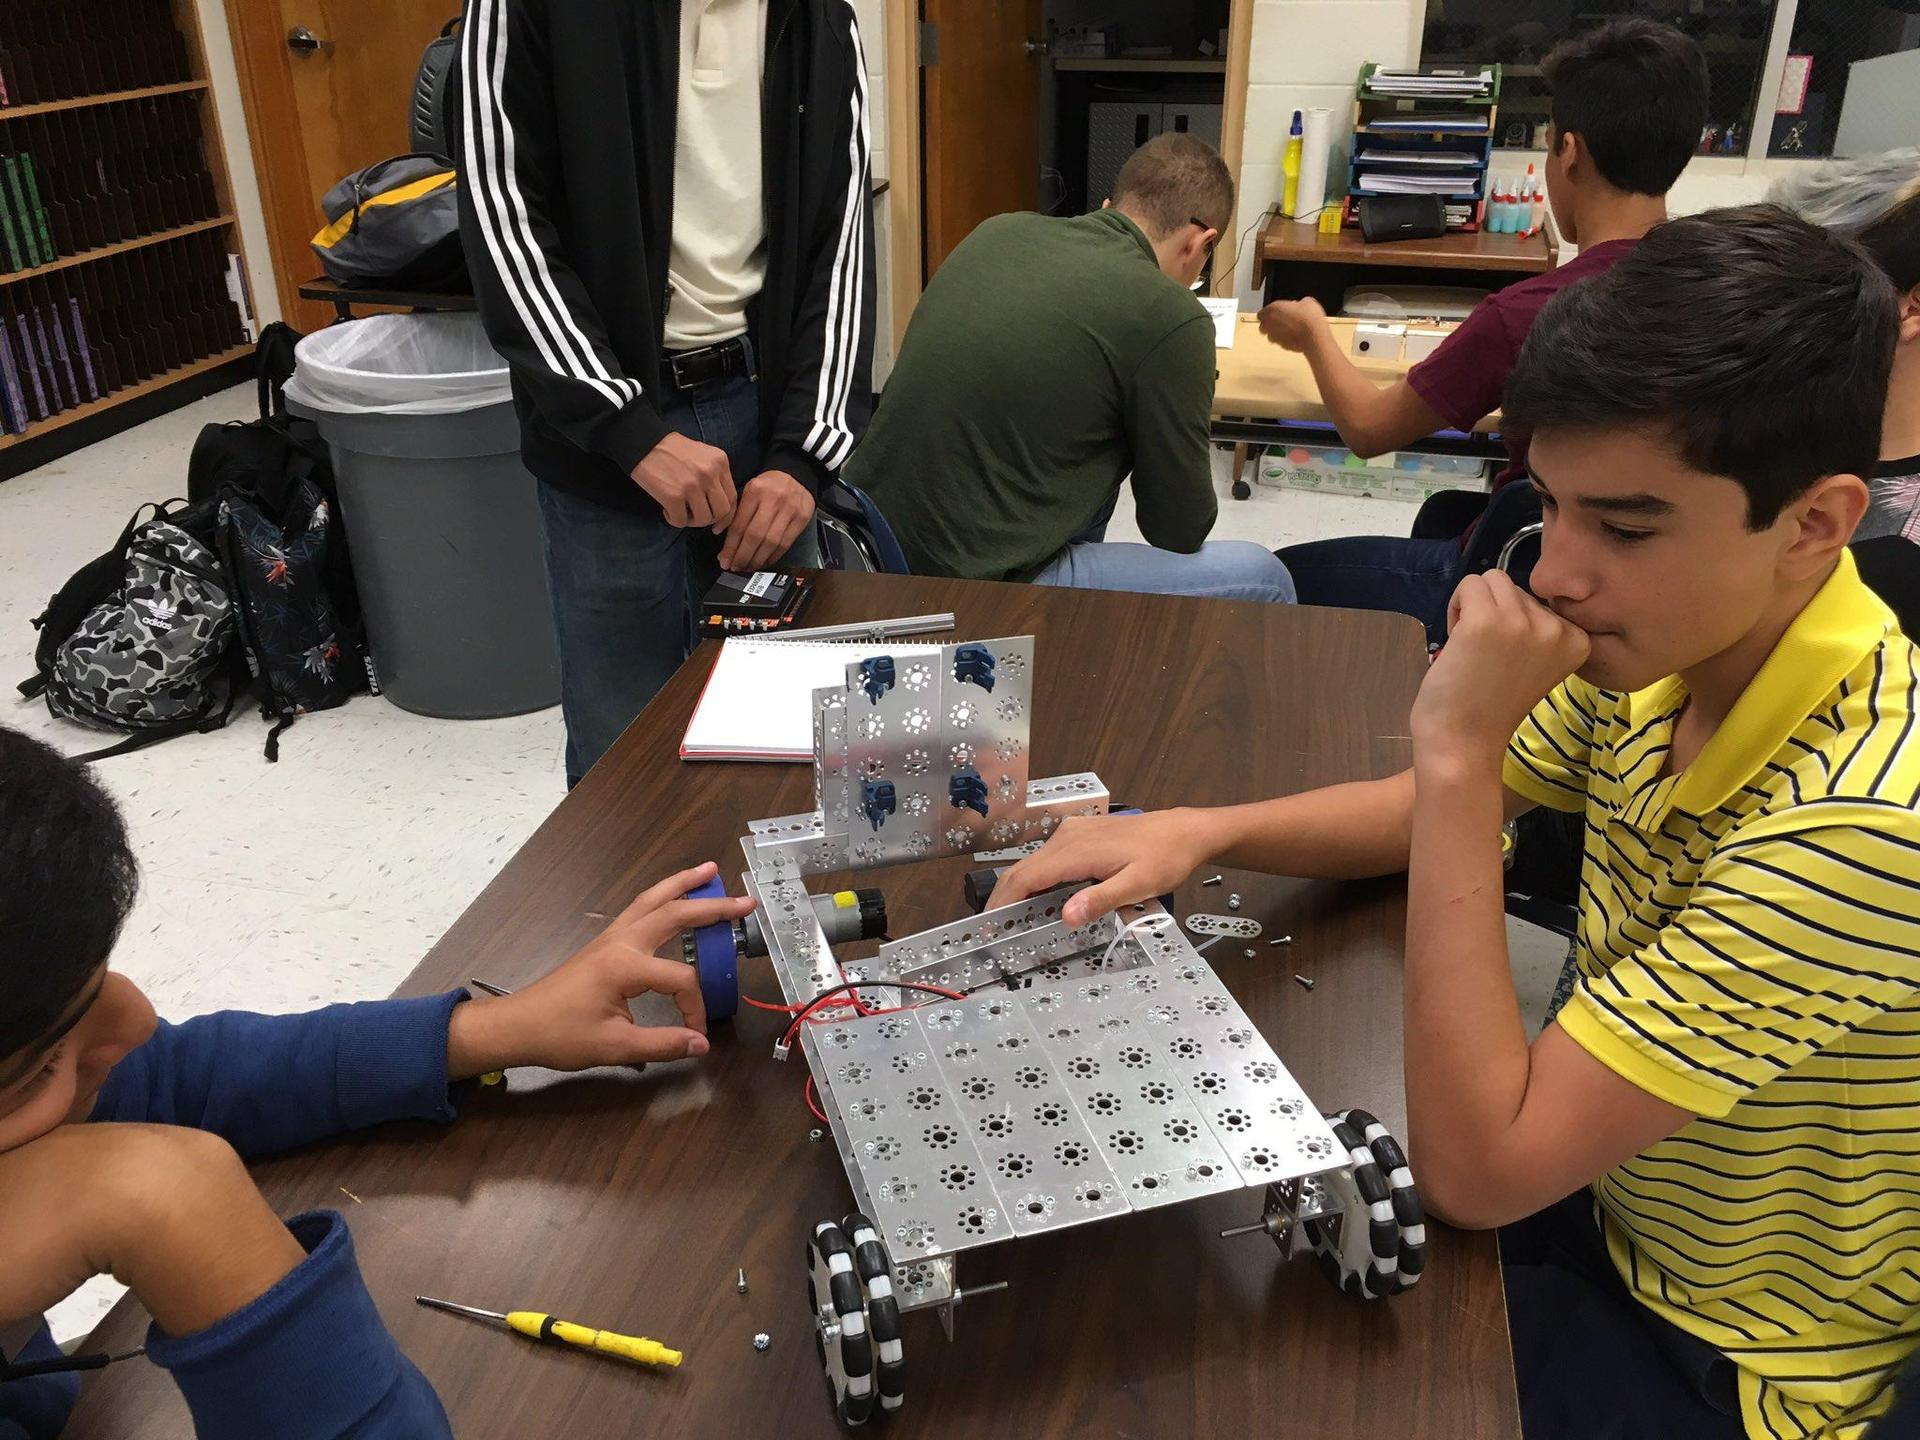 student sitting down thinking about how to design robot